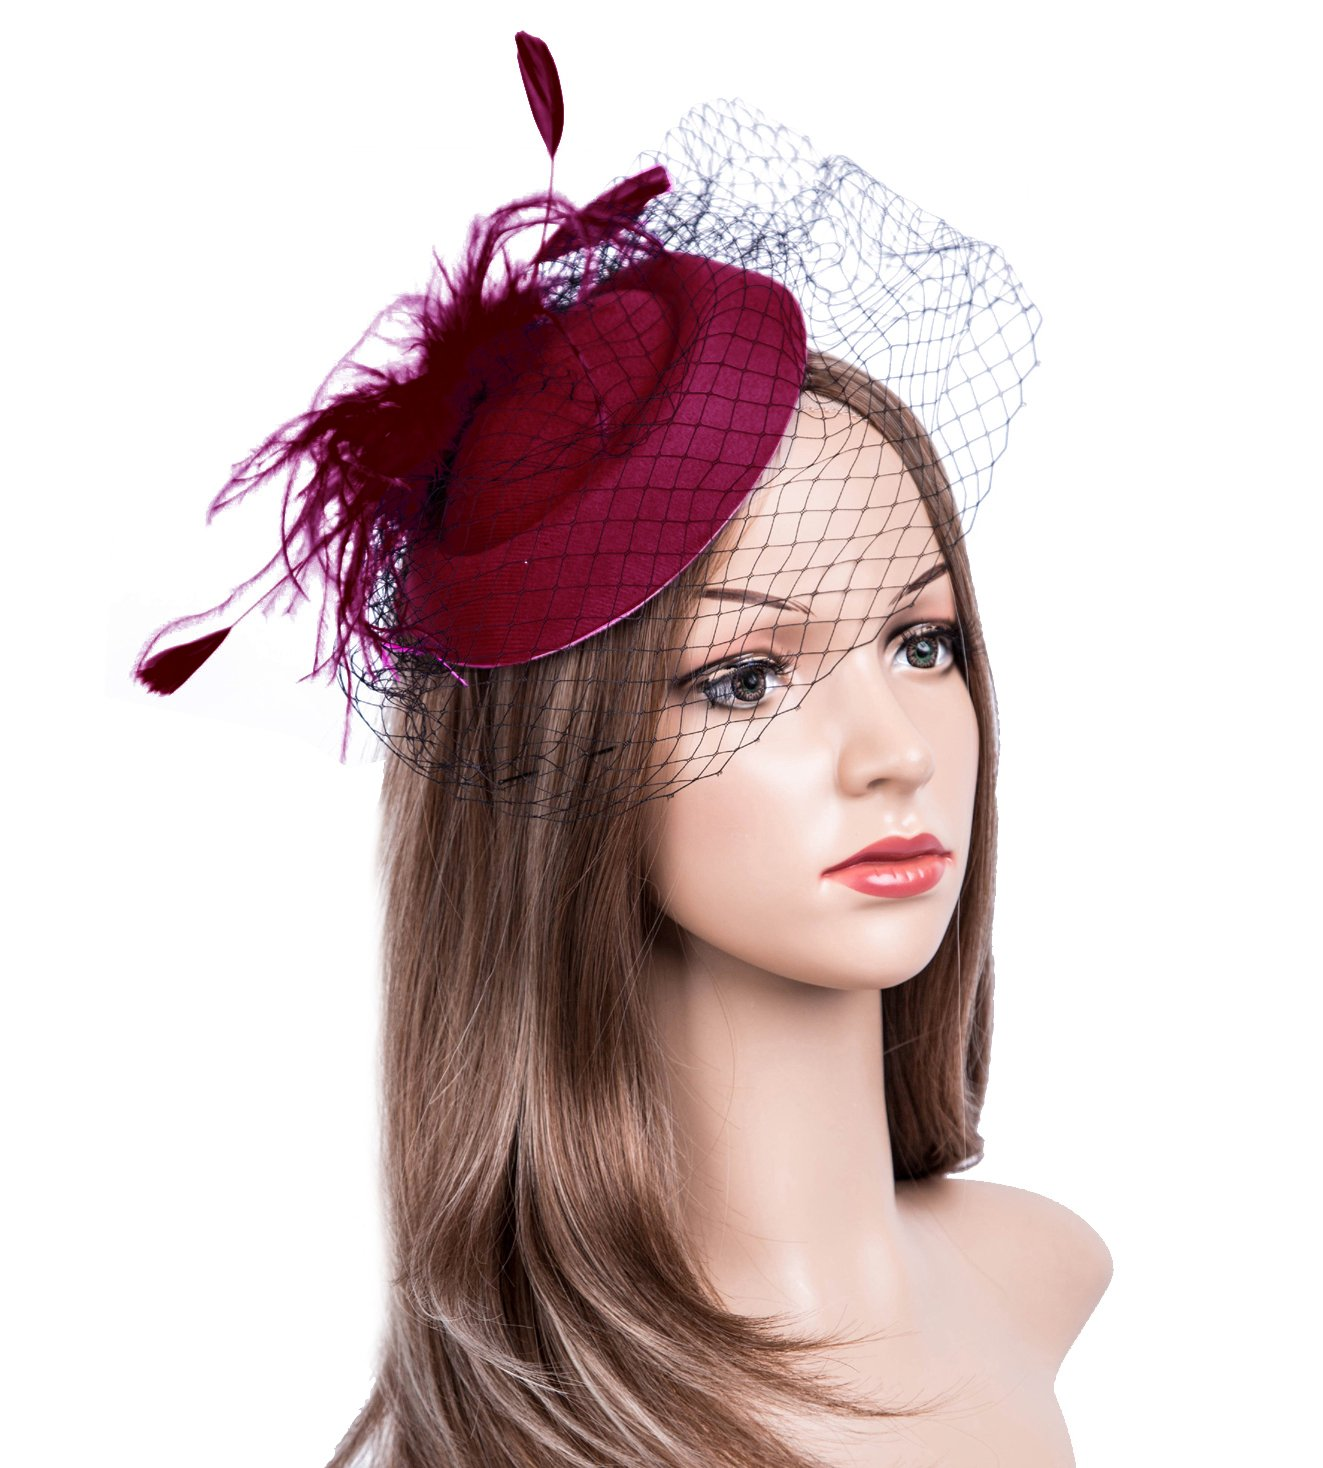 Cizoe Fascinators Hats 20s 50s Hat Pillbox Hat Cocktail Tea Party Headwear with Veil for Girls and Women (B-Burgundy)